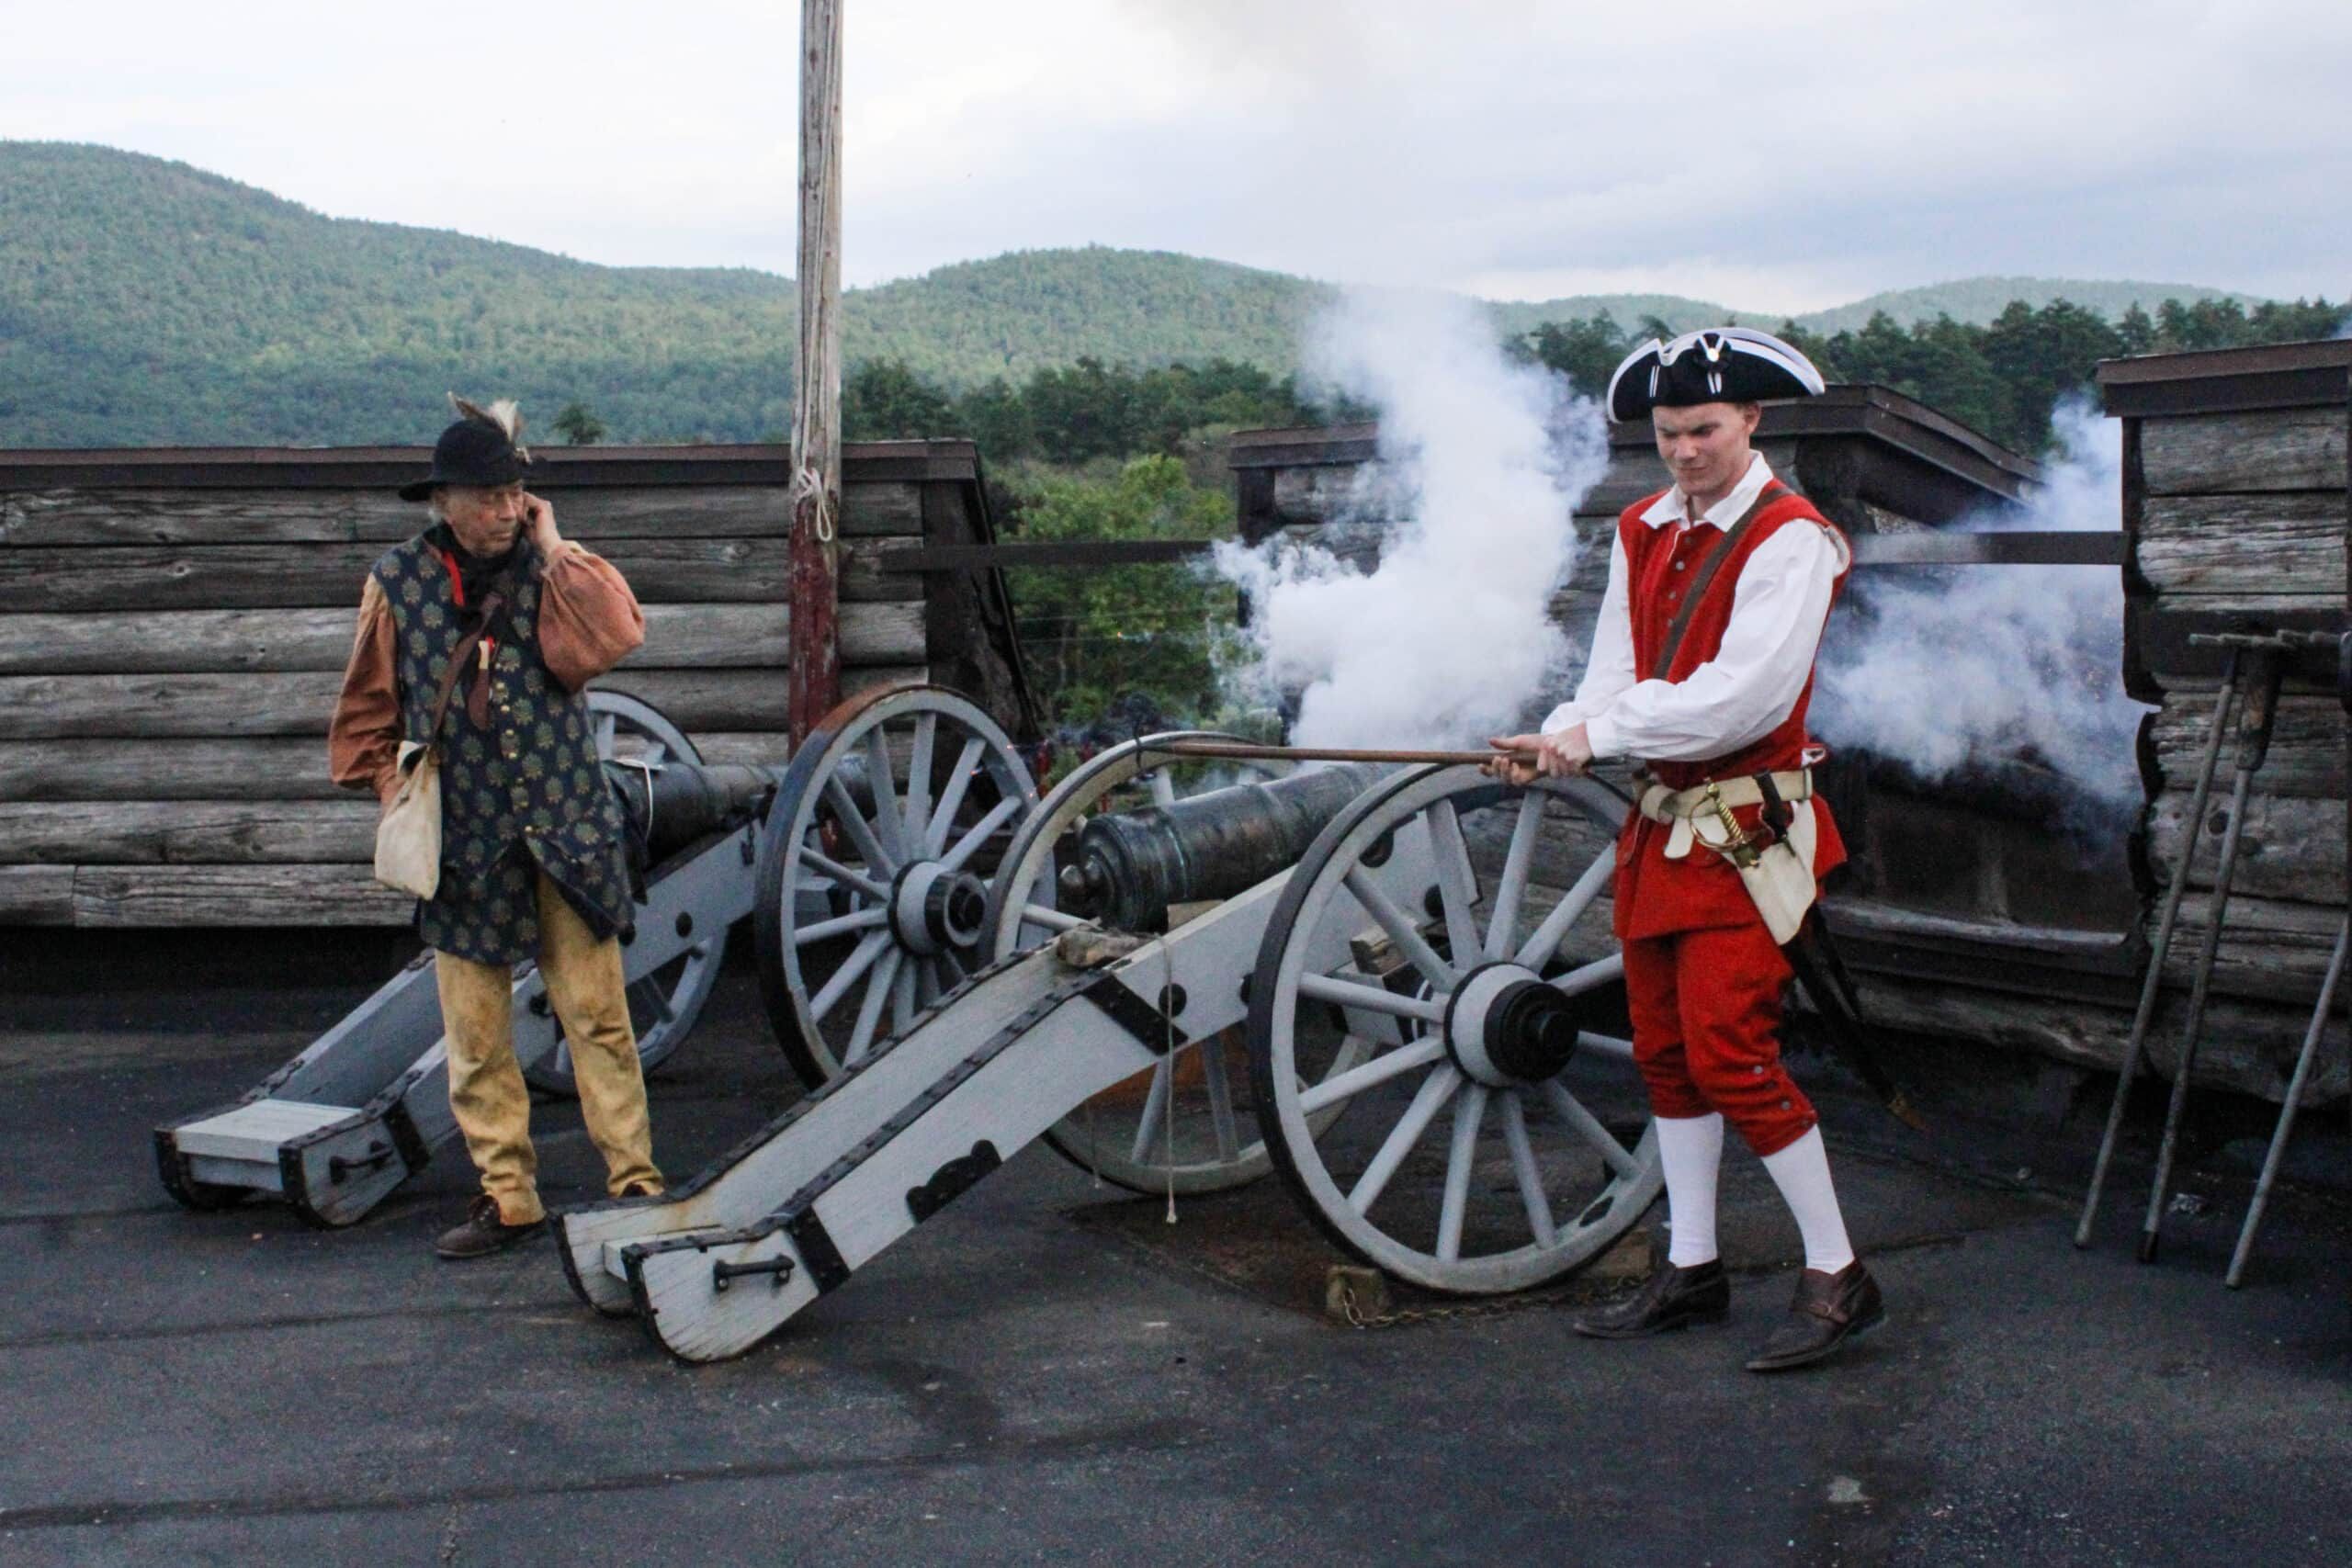 Firing a cannon at Fort William Henry